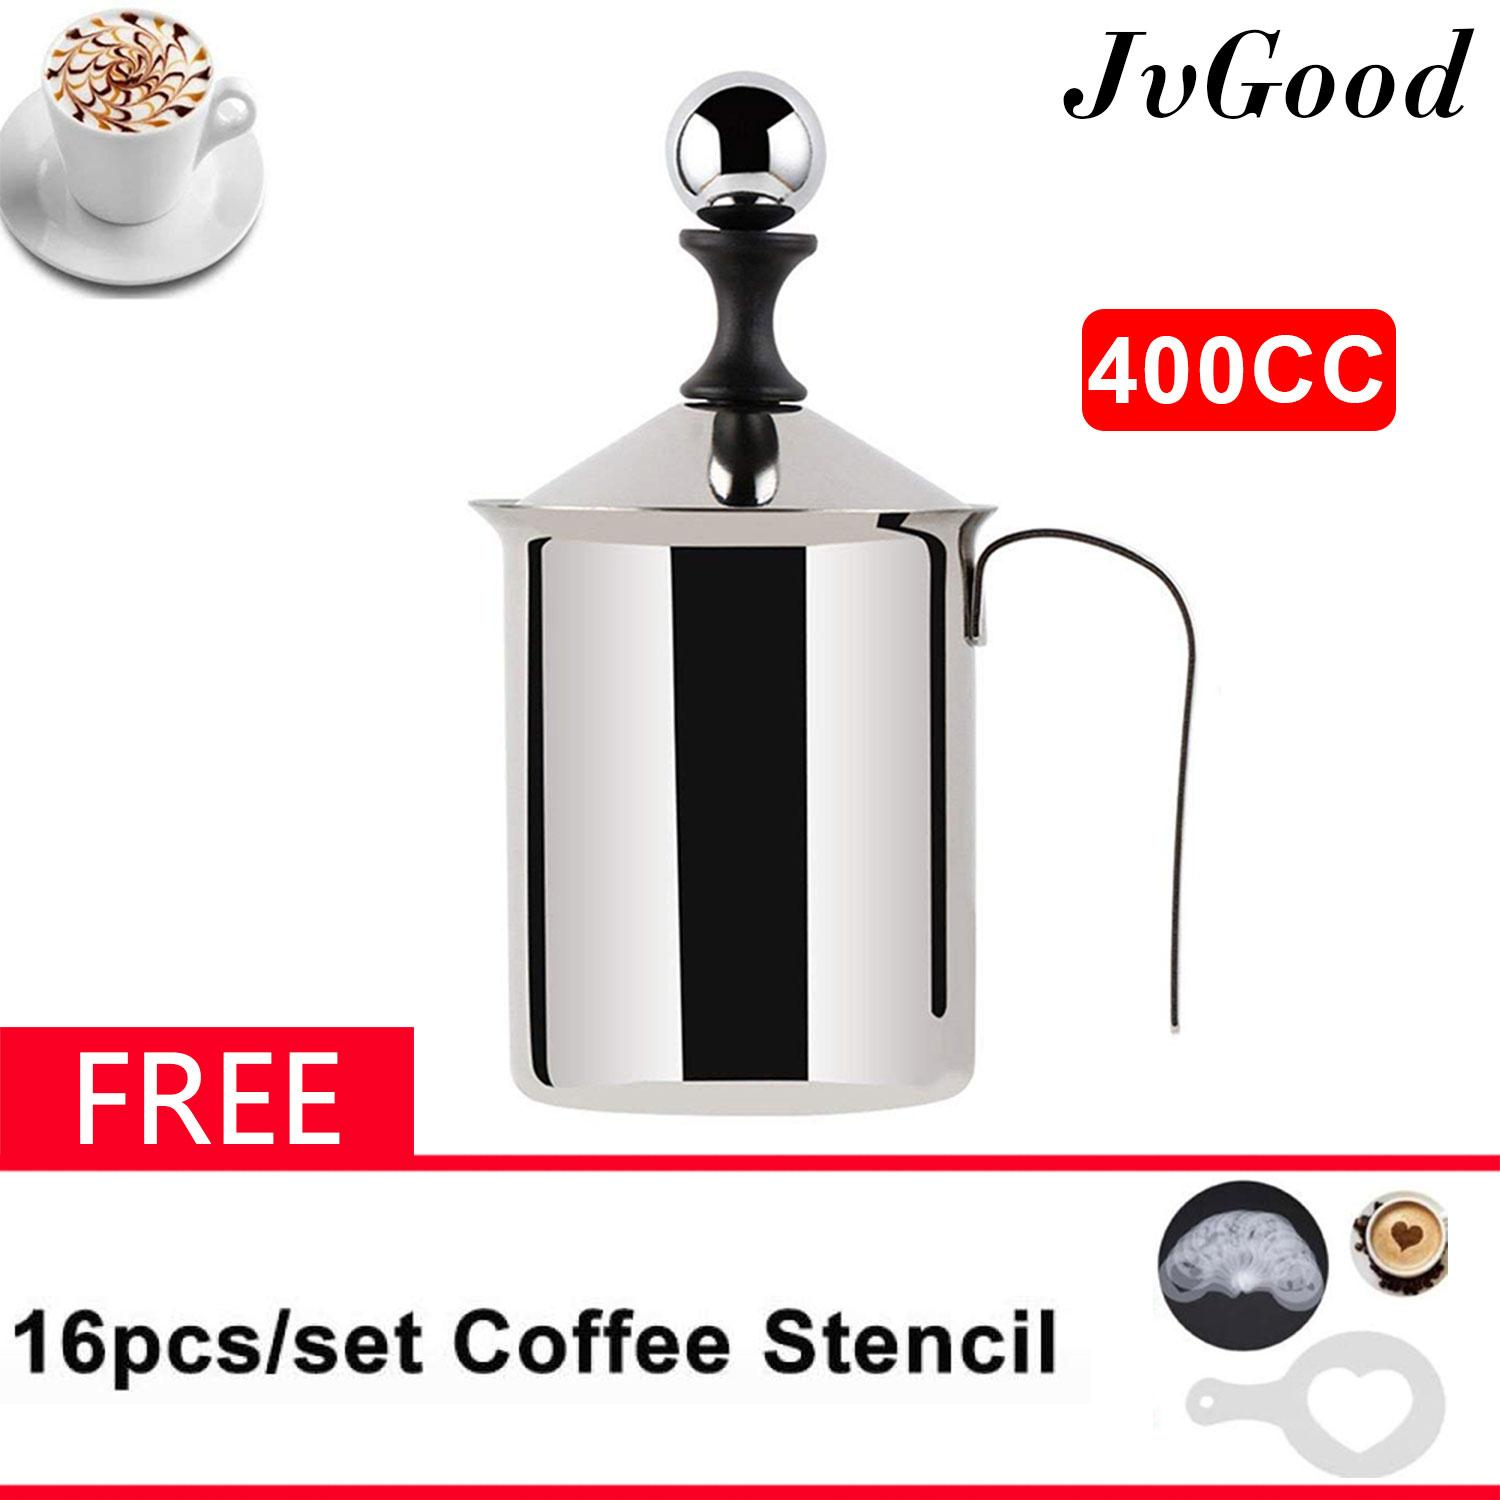 Jvgood Manual Milk Frother Foamer Stainless Steel Cappuccino Coffee Creamer Foam Pitcher With Handle And Lid Double Mesh 400cc/800cc By Jvgood.